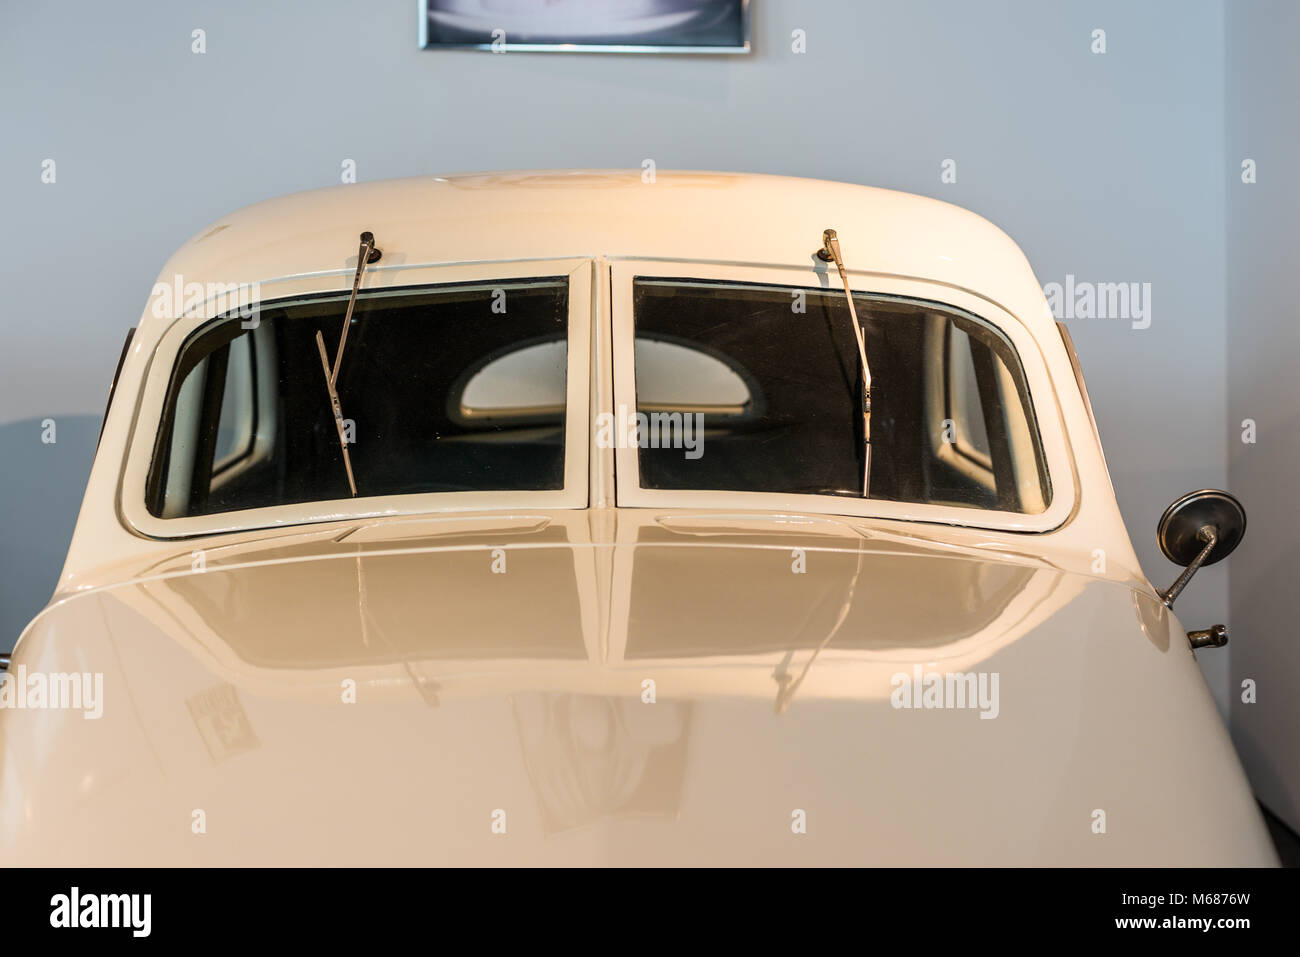 Malaga, Spain - December 7, 2016: Close up view of Cord Westchester 1937 USA car displayed at Malaga Automobile - Stock Image